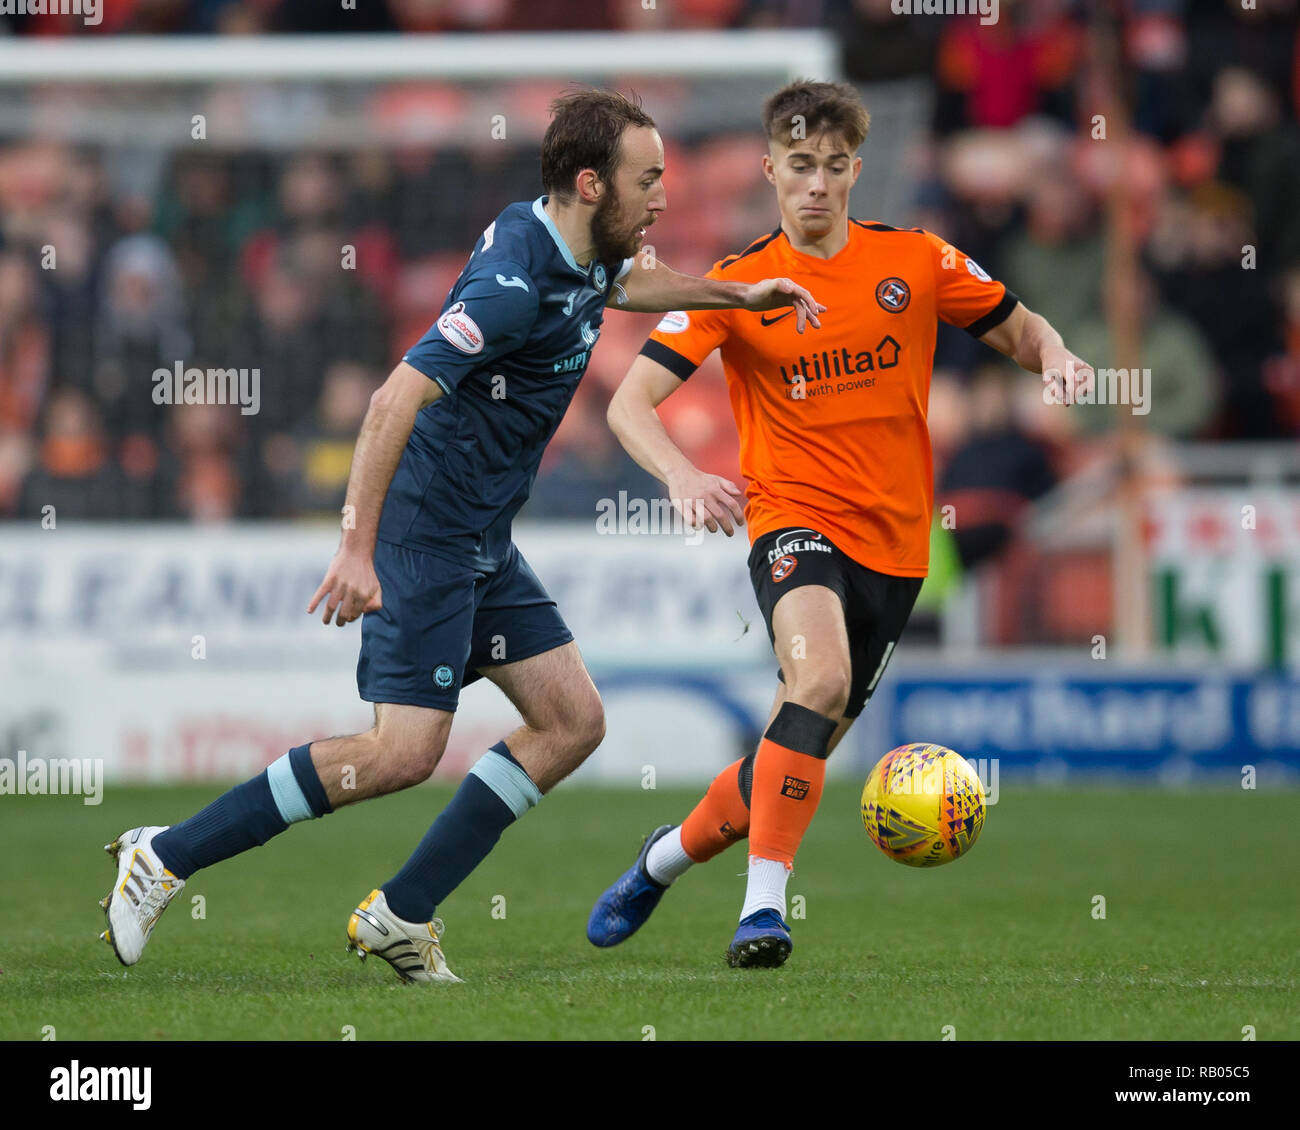 Tannadice Park, Dundee, UK. 5th Jan, 2019. Scottish Championship football, Dundee United versus Partick Thistle; Stuart Bannigan of Patrick Thistle and Matthew Smith of Dundee United Credit: Action Plus Sports/Alamy Live News - Stock Image